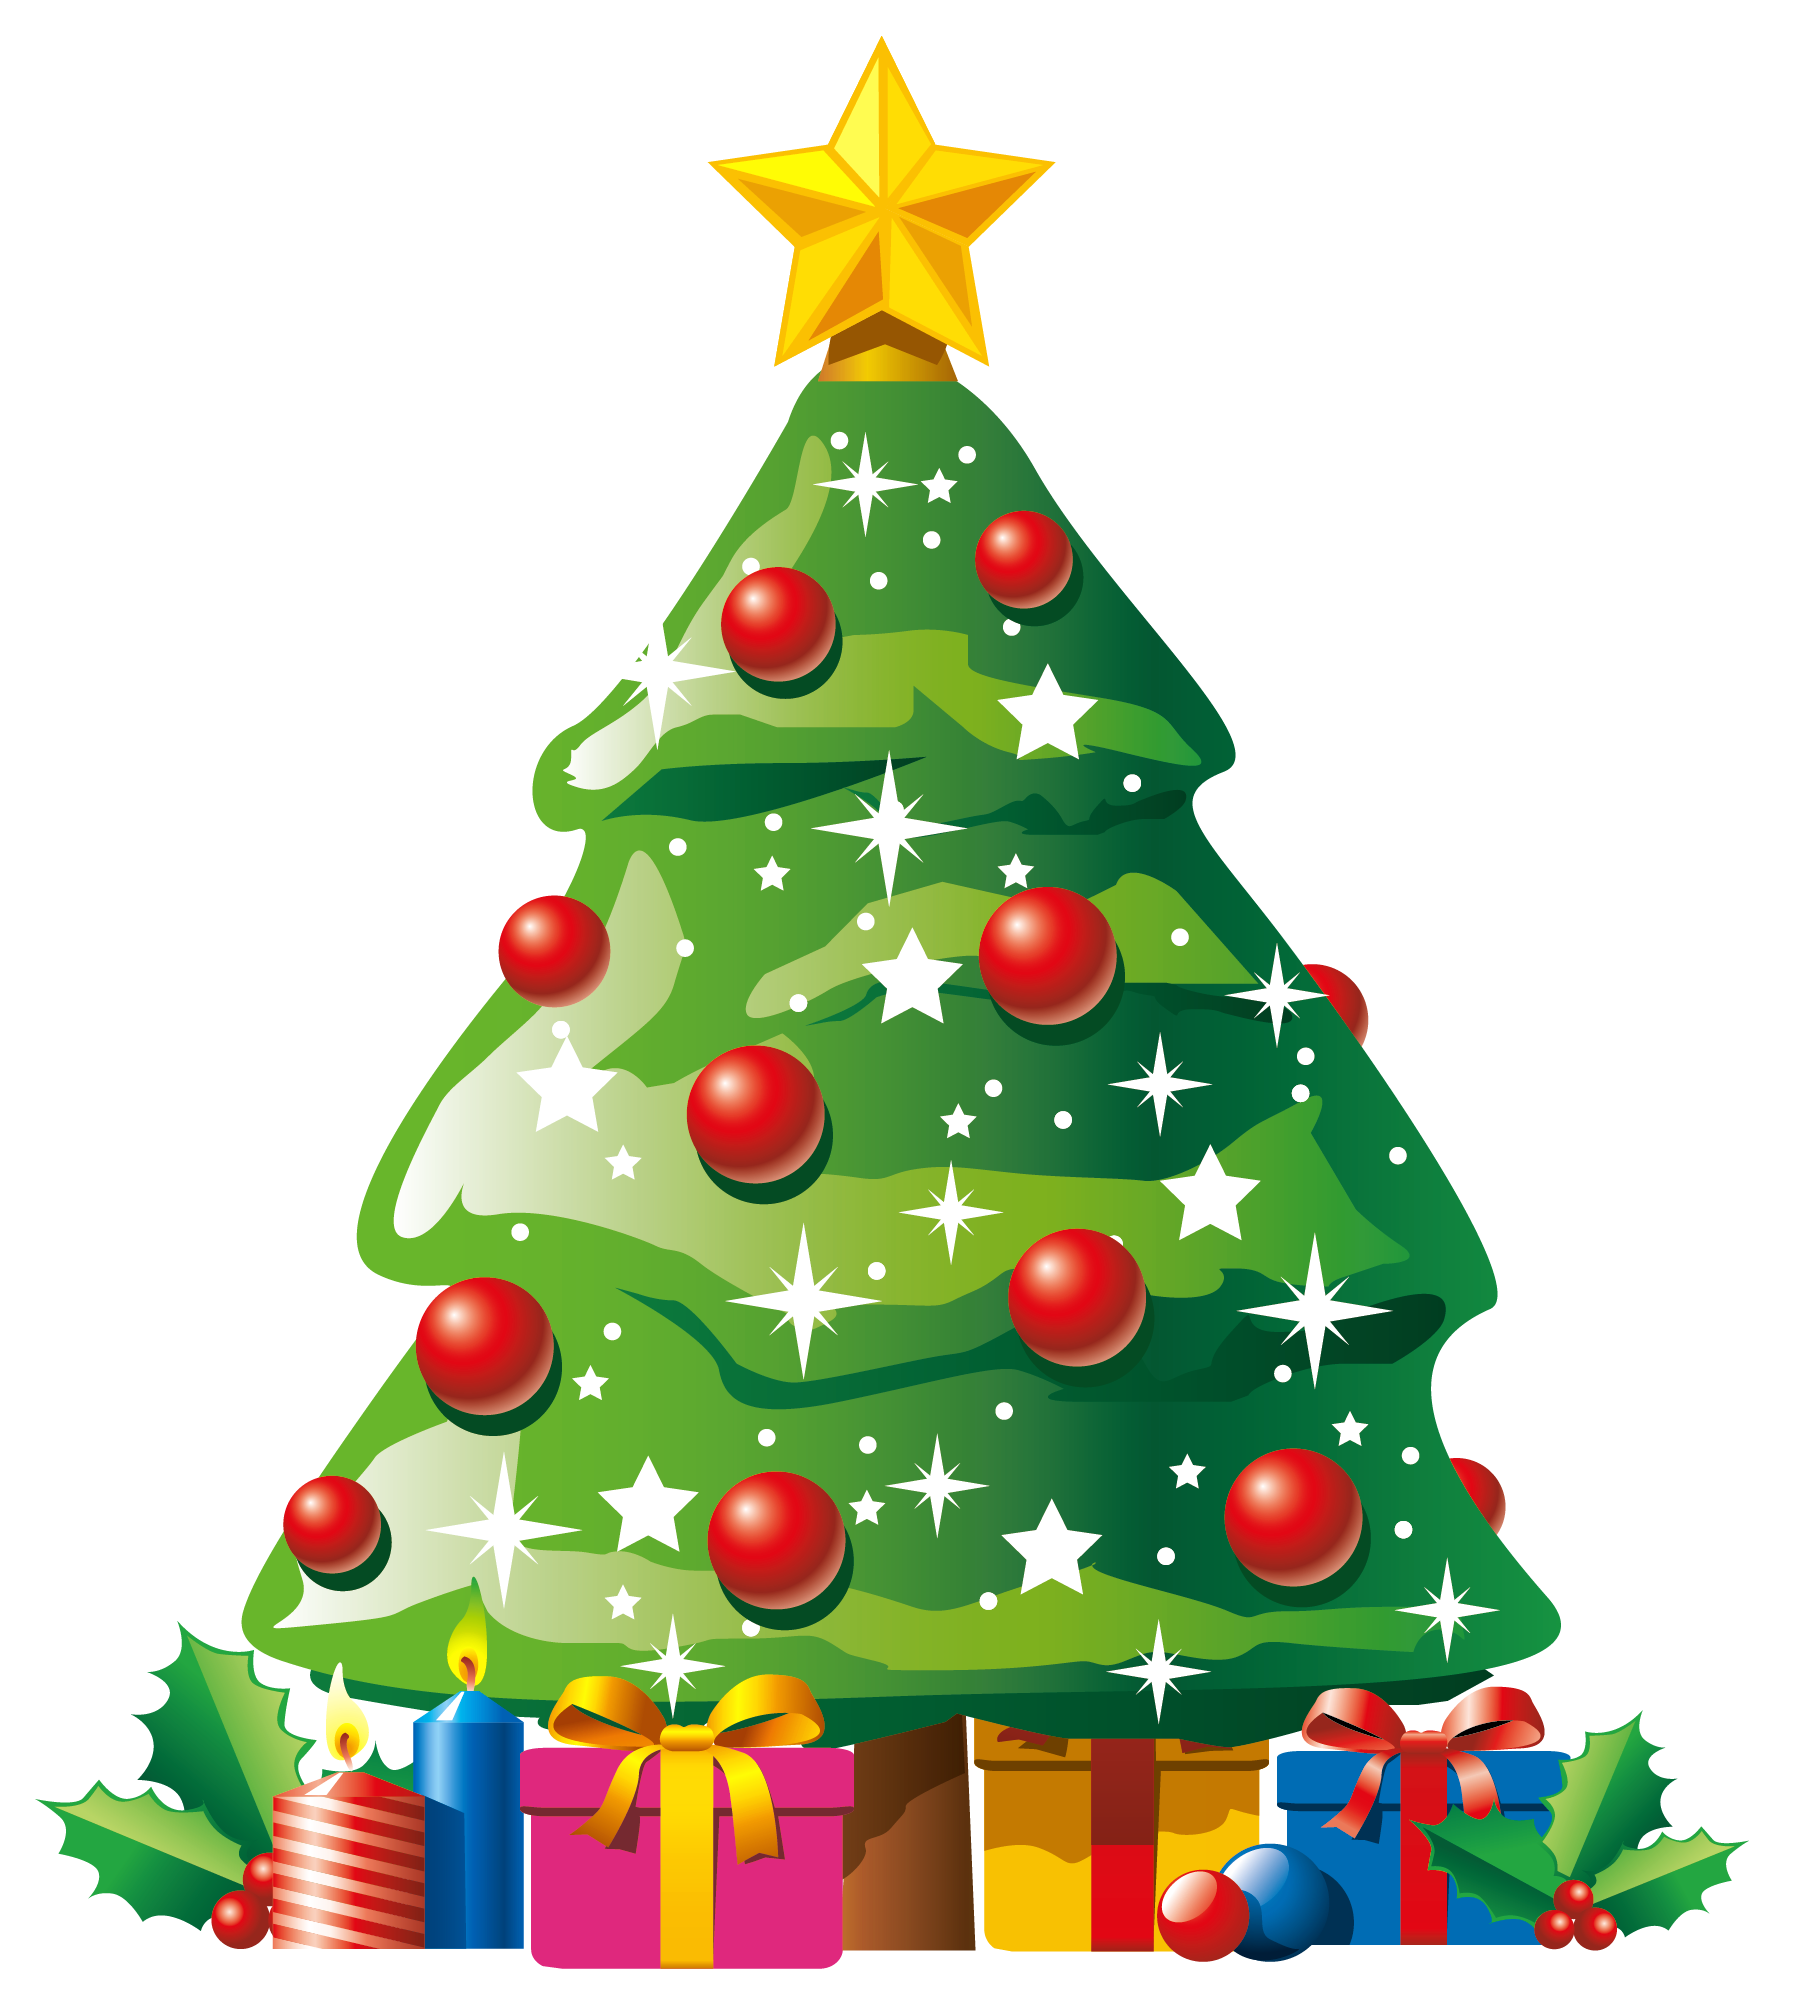 Christmas Tree Image Clipart - ClipArt Best